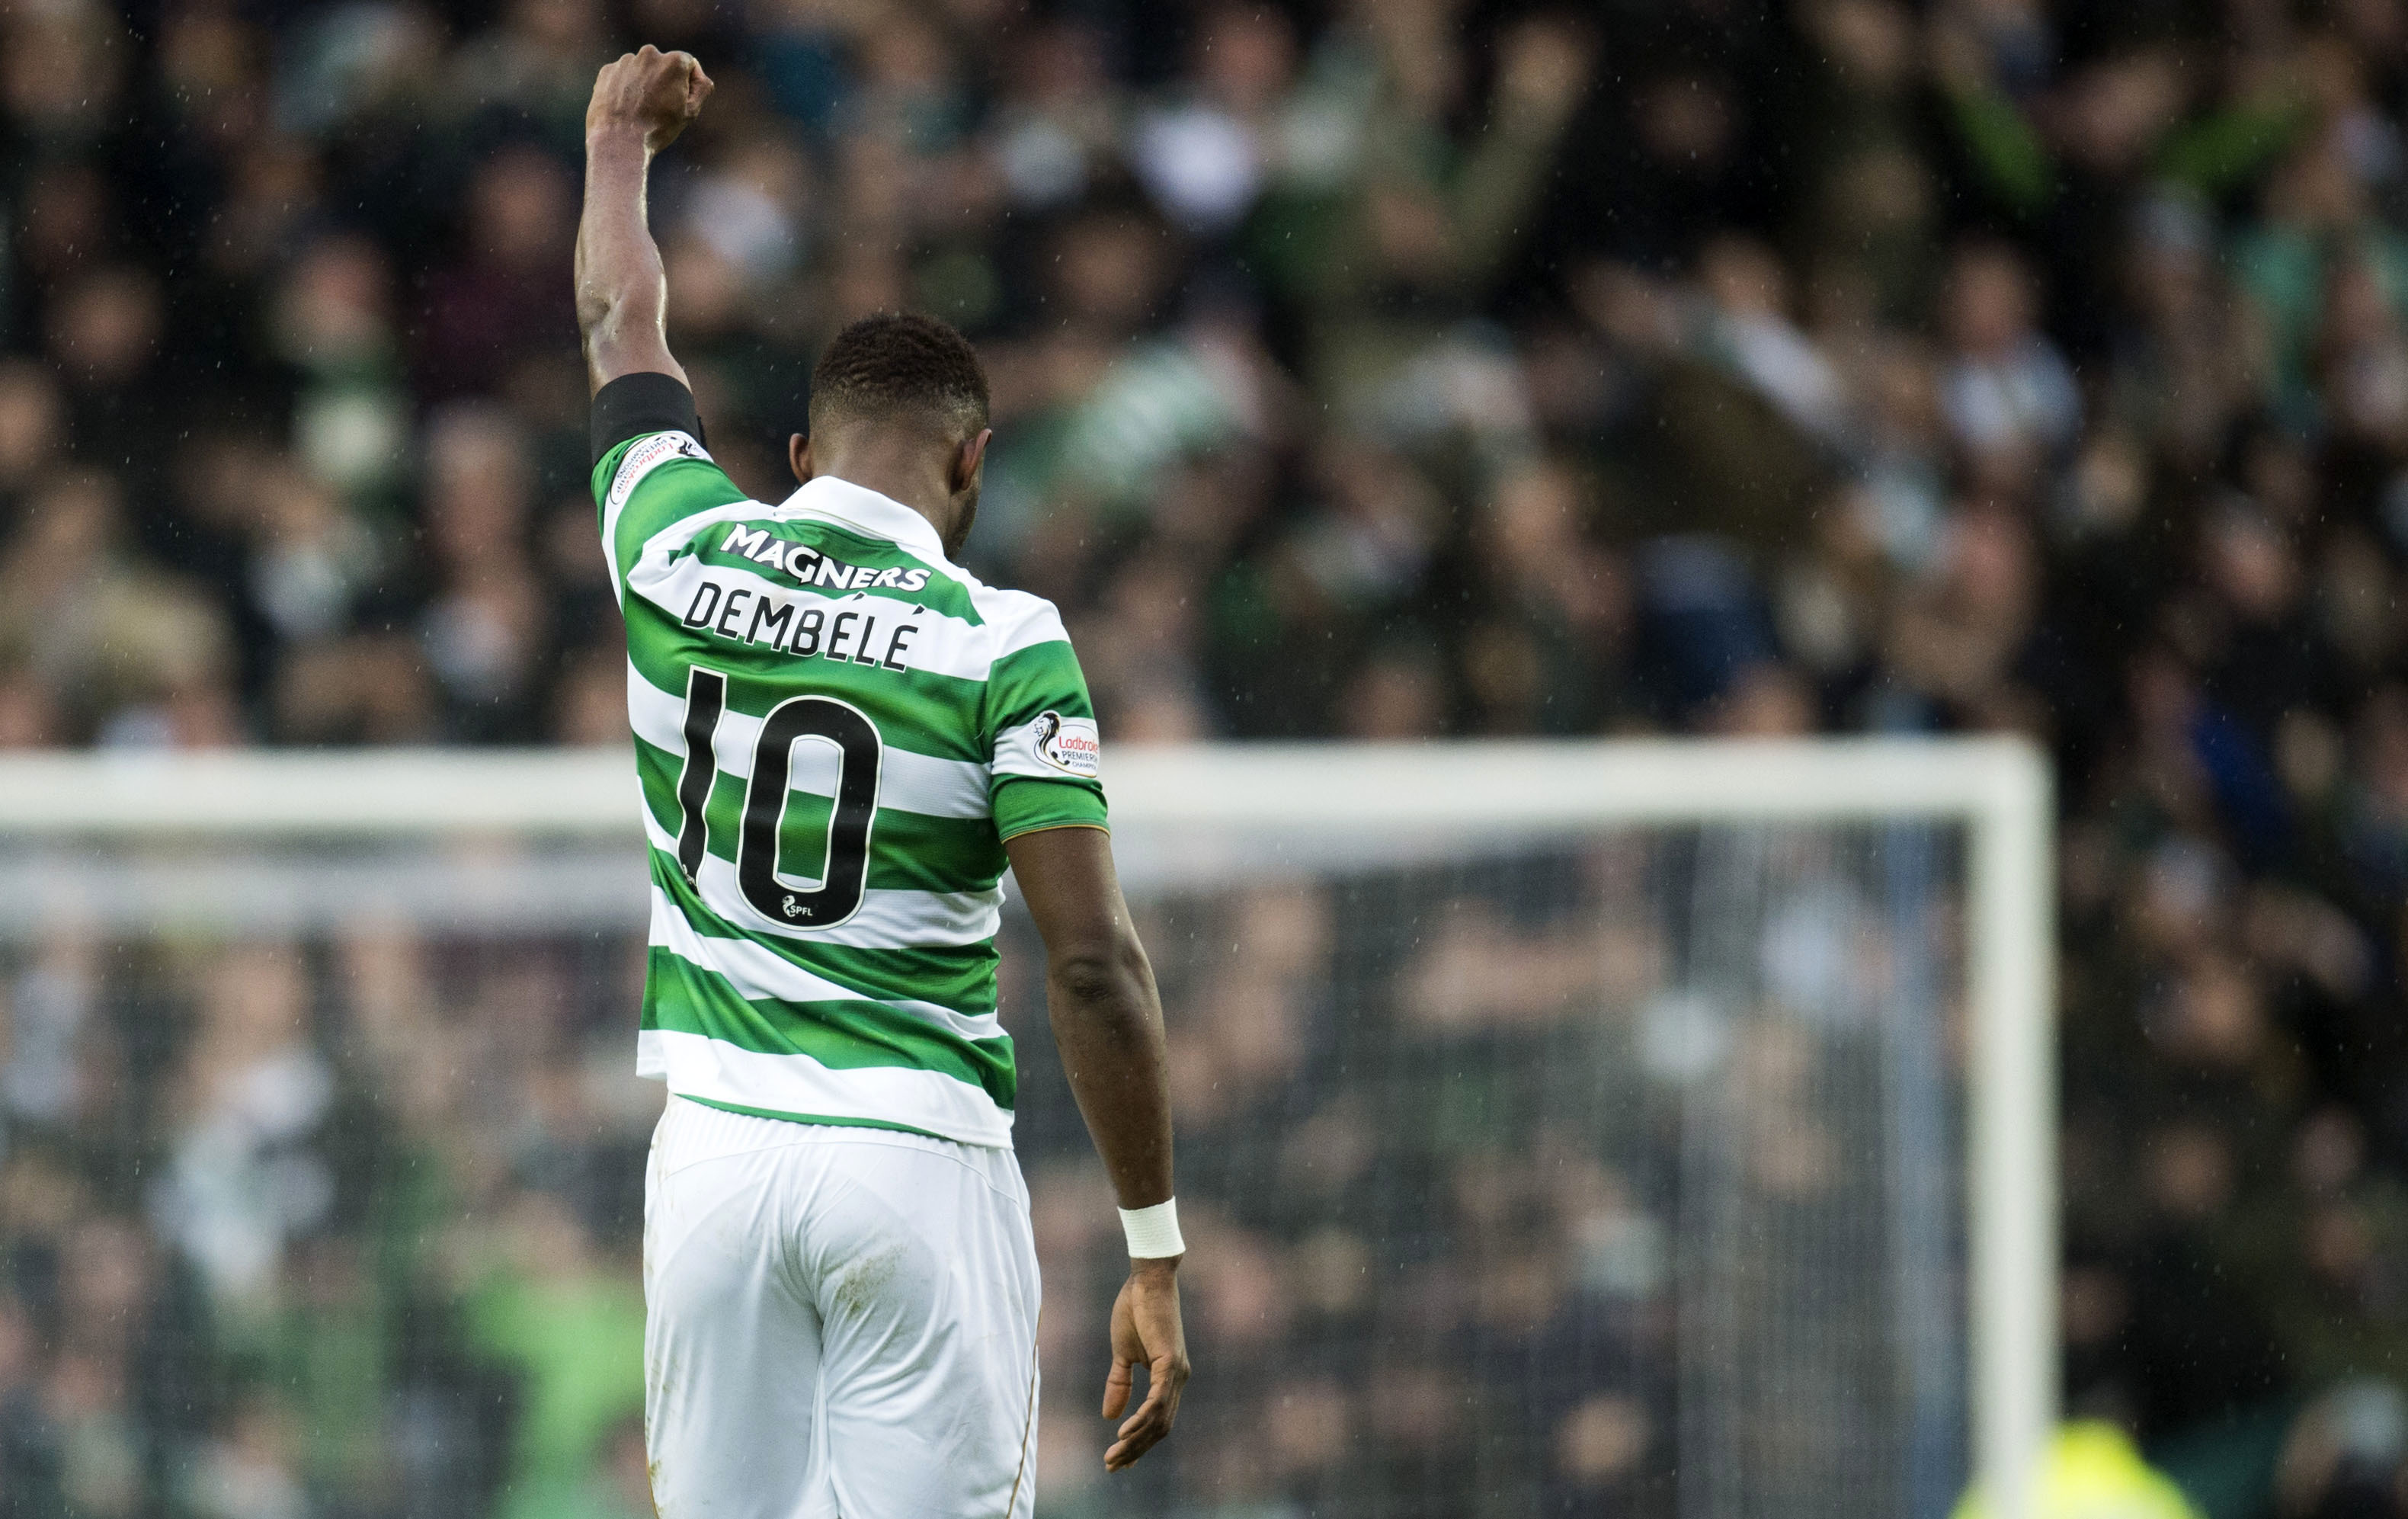 Celtic's Moussa Dembele celebrates his goal (SNS Group)